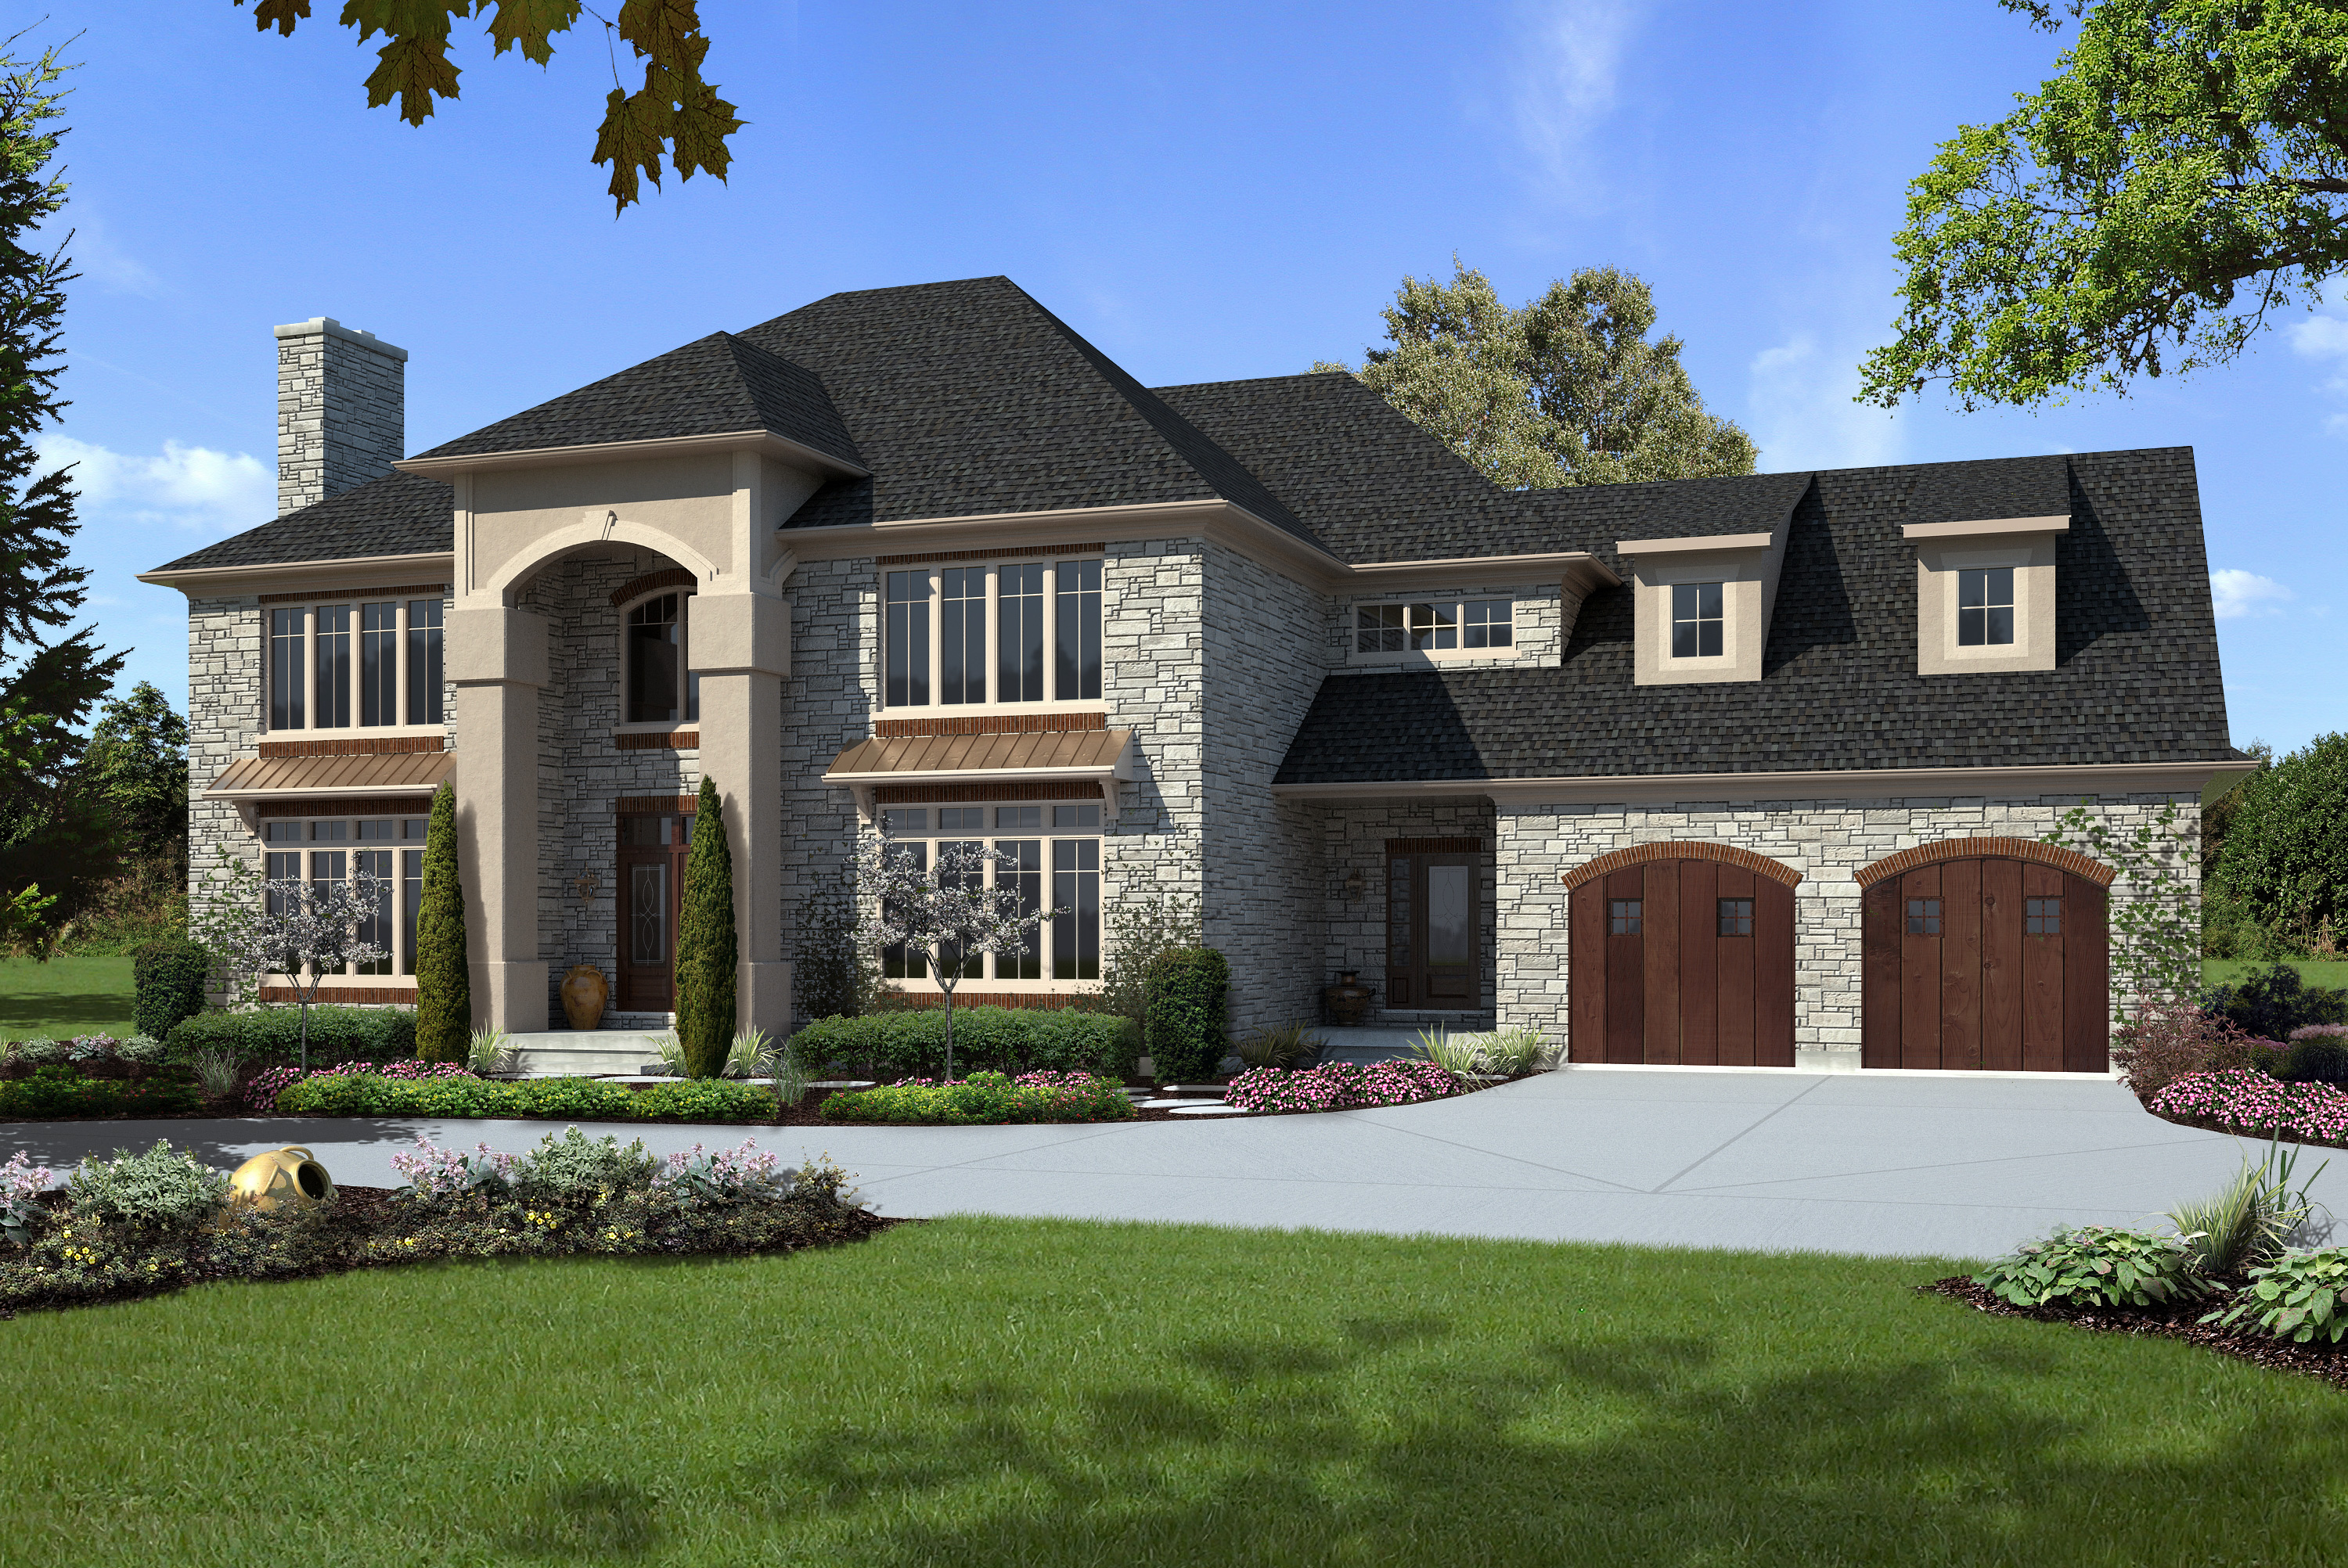 custom home designs custom house plans custom home plans custom floor plans at houseplansnet - Custom Home Design